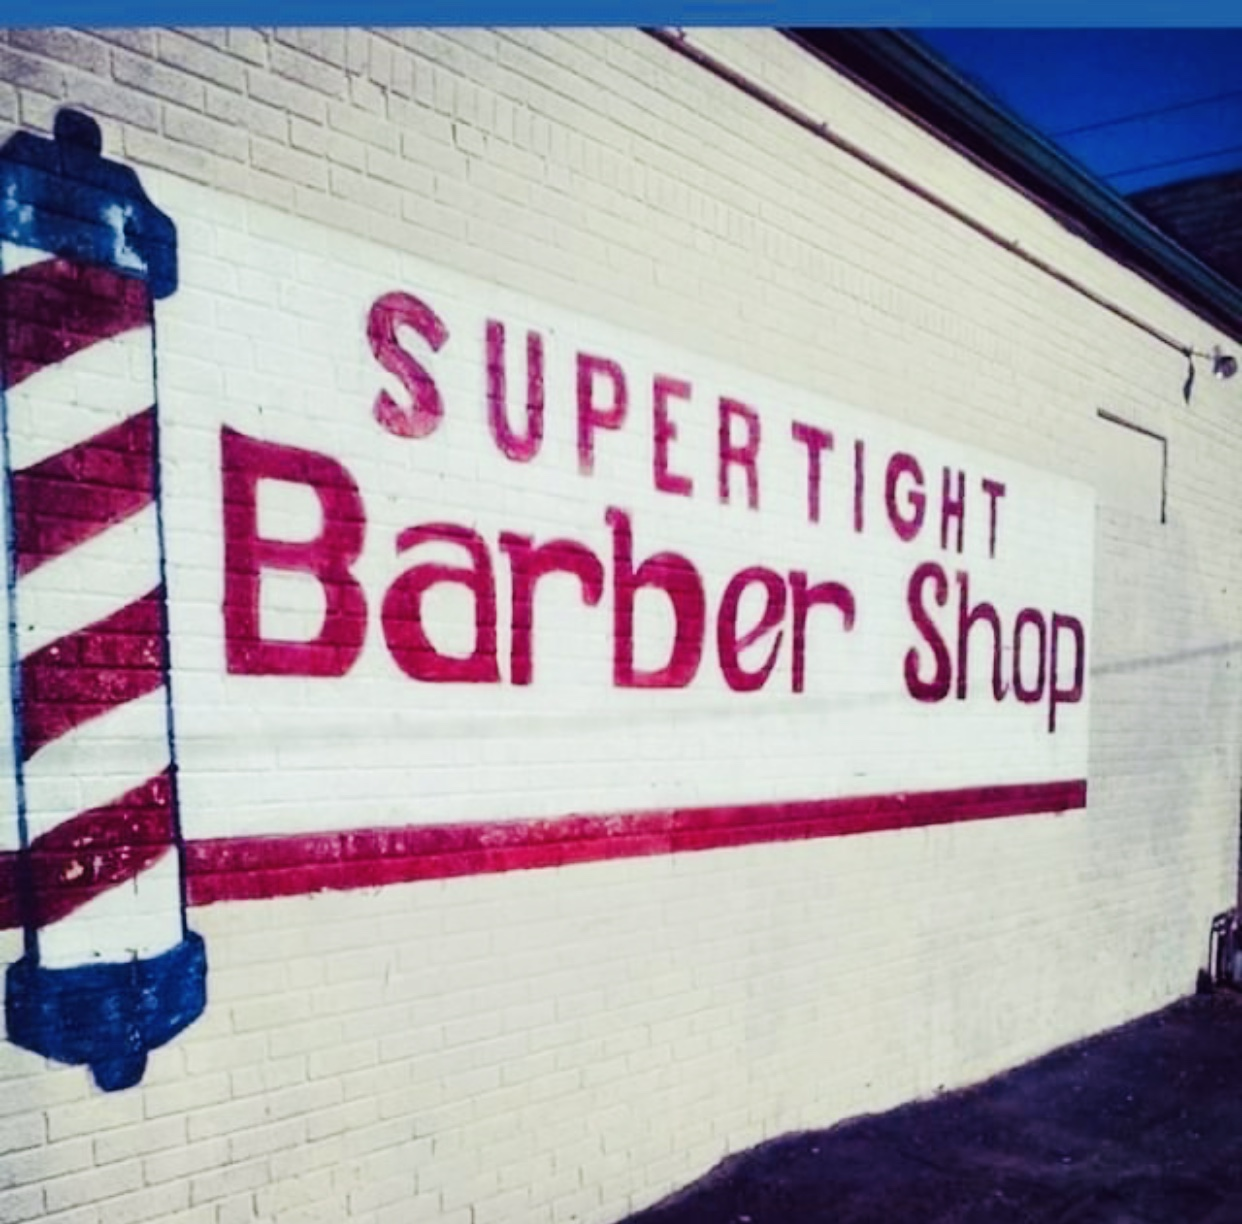 Super Tight Barbershop - Black Owned